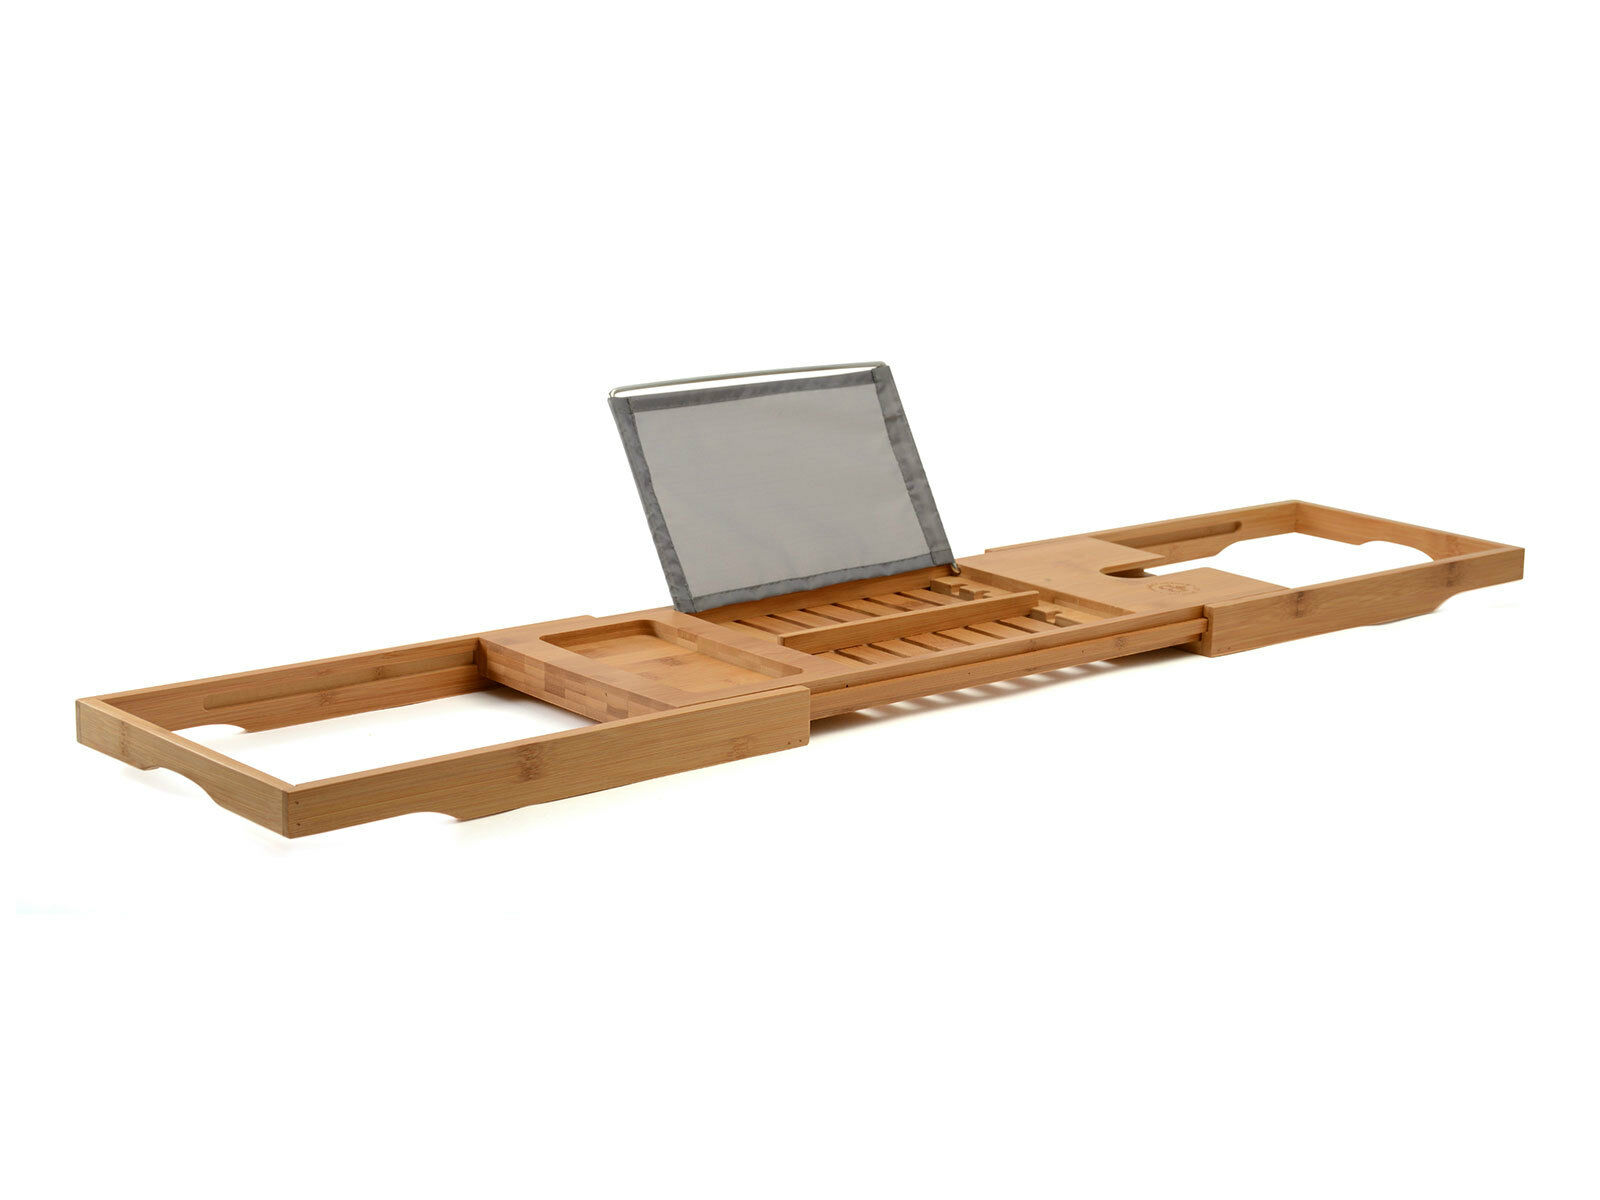 Bambusi Bamboo Bathtub Caddy Tray w Extending Sides, Reading Rack, Tablet  Holder, Cellphone Tray & Wine Glass Holder